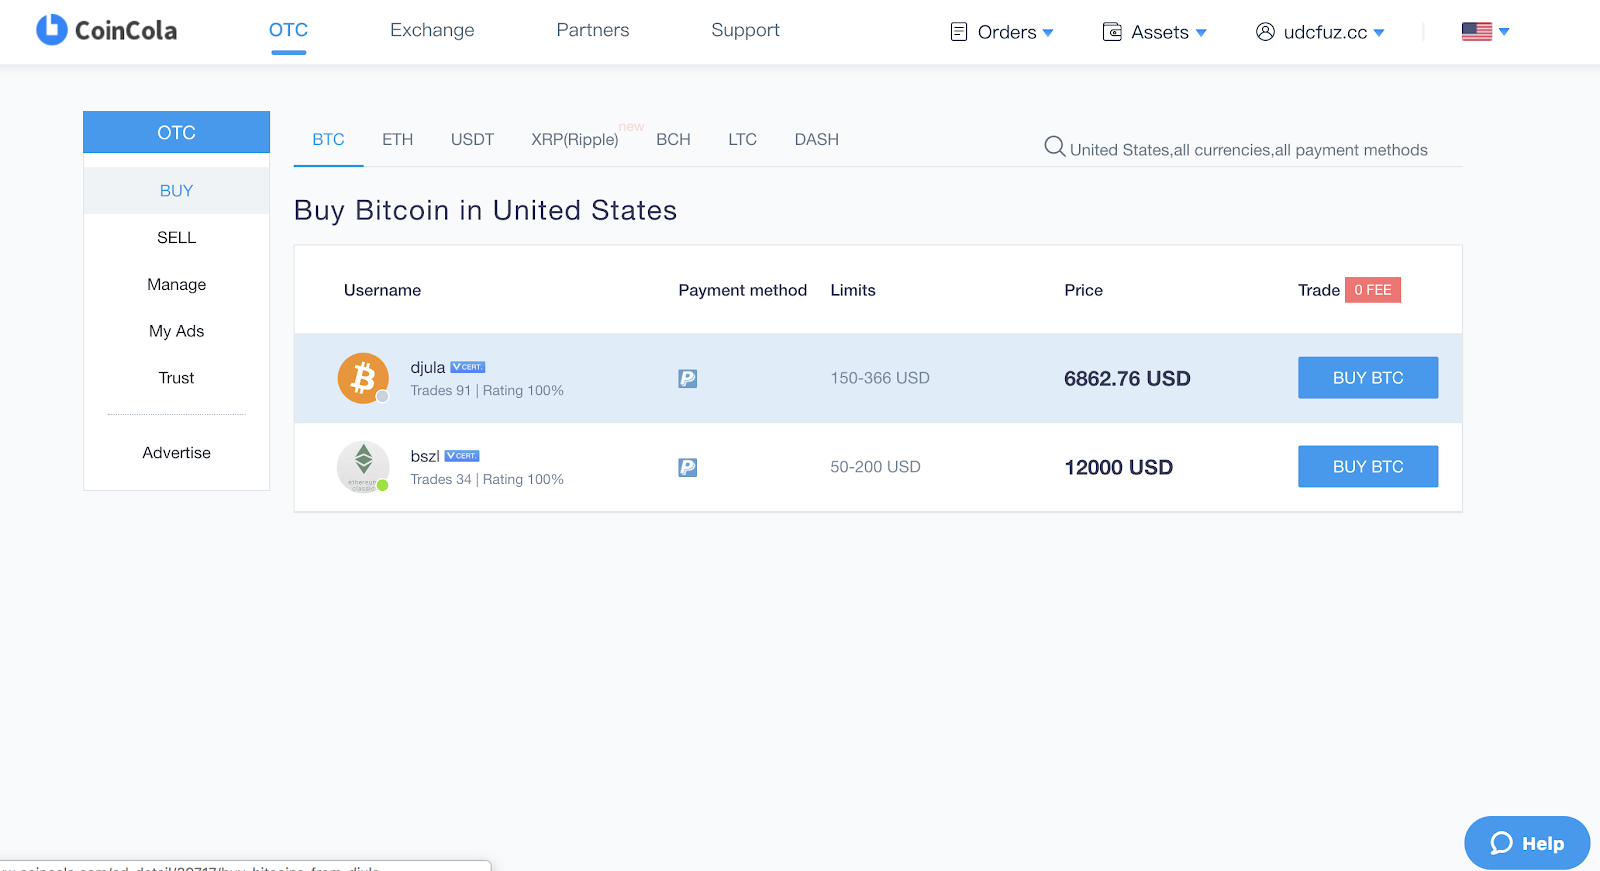 buy bitcoin on coincola otc cryptocurrency marketplace